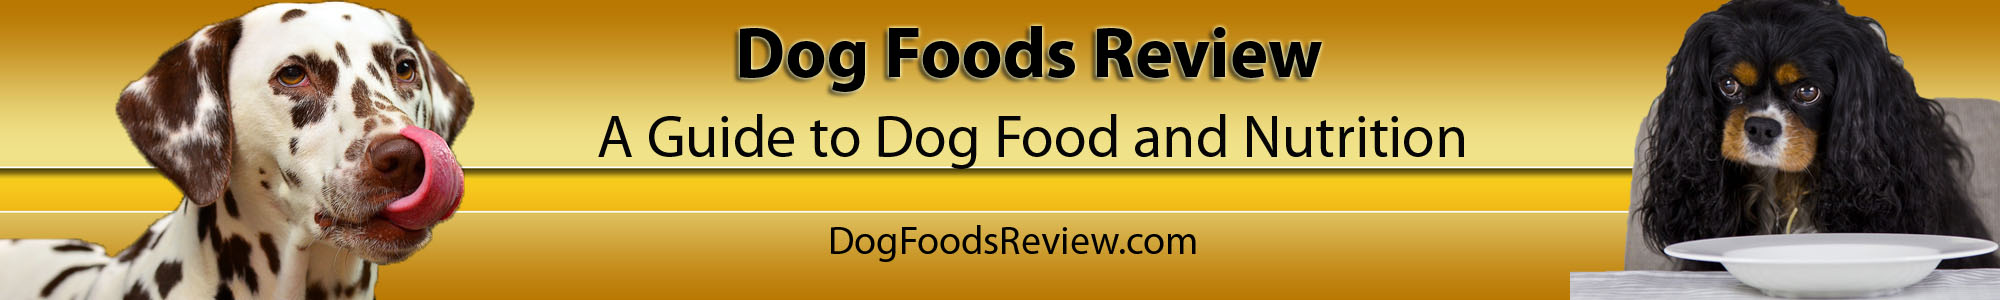 DogFoodsReview.com